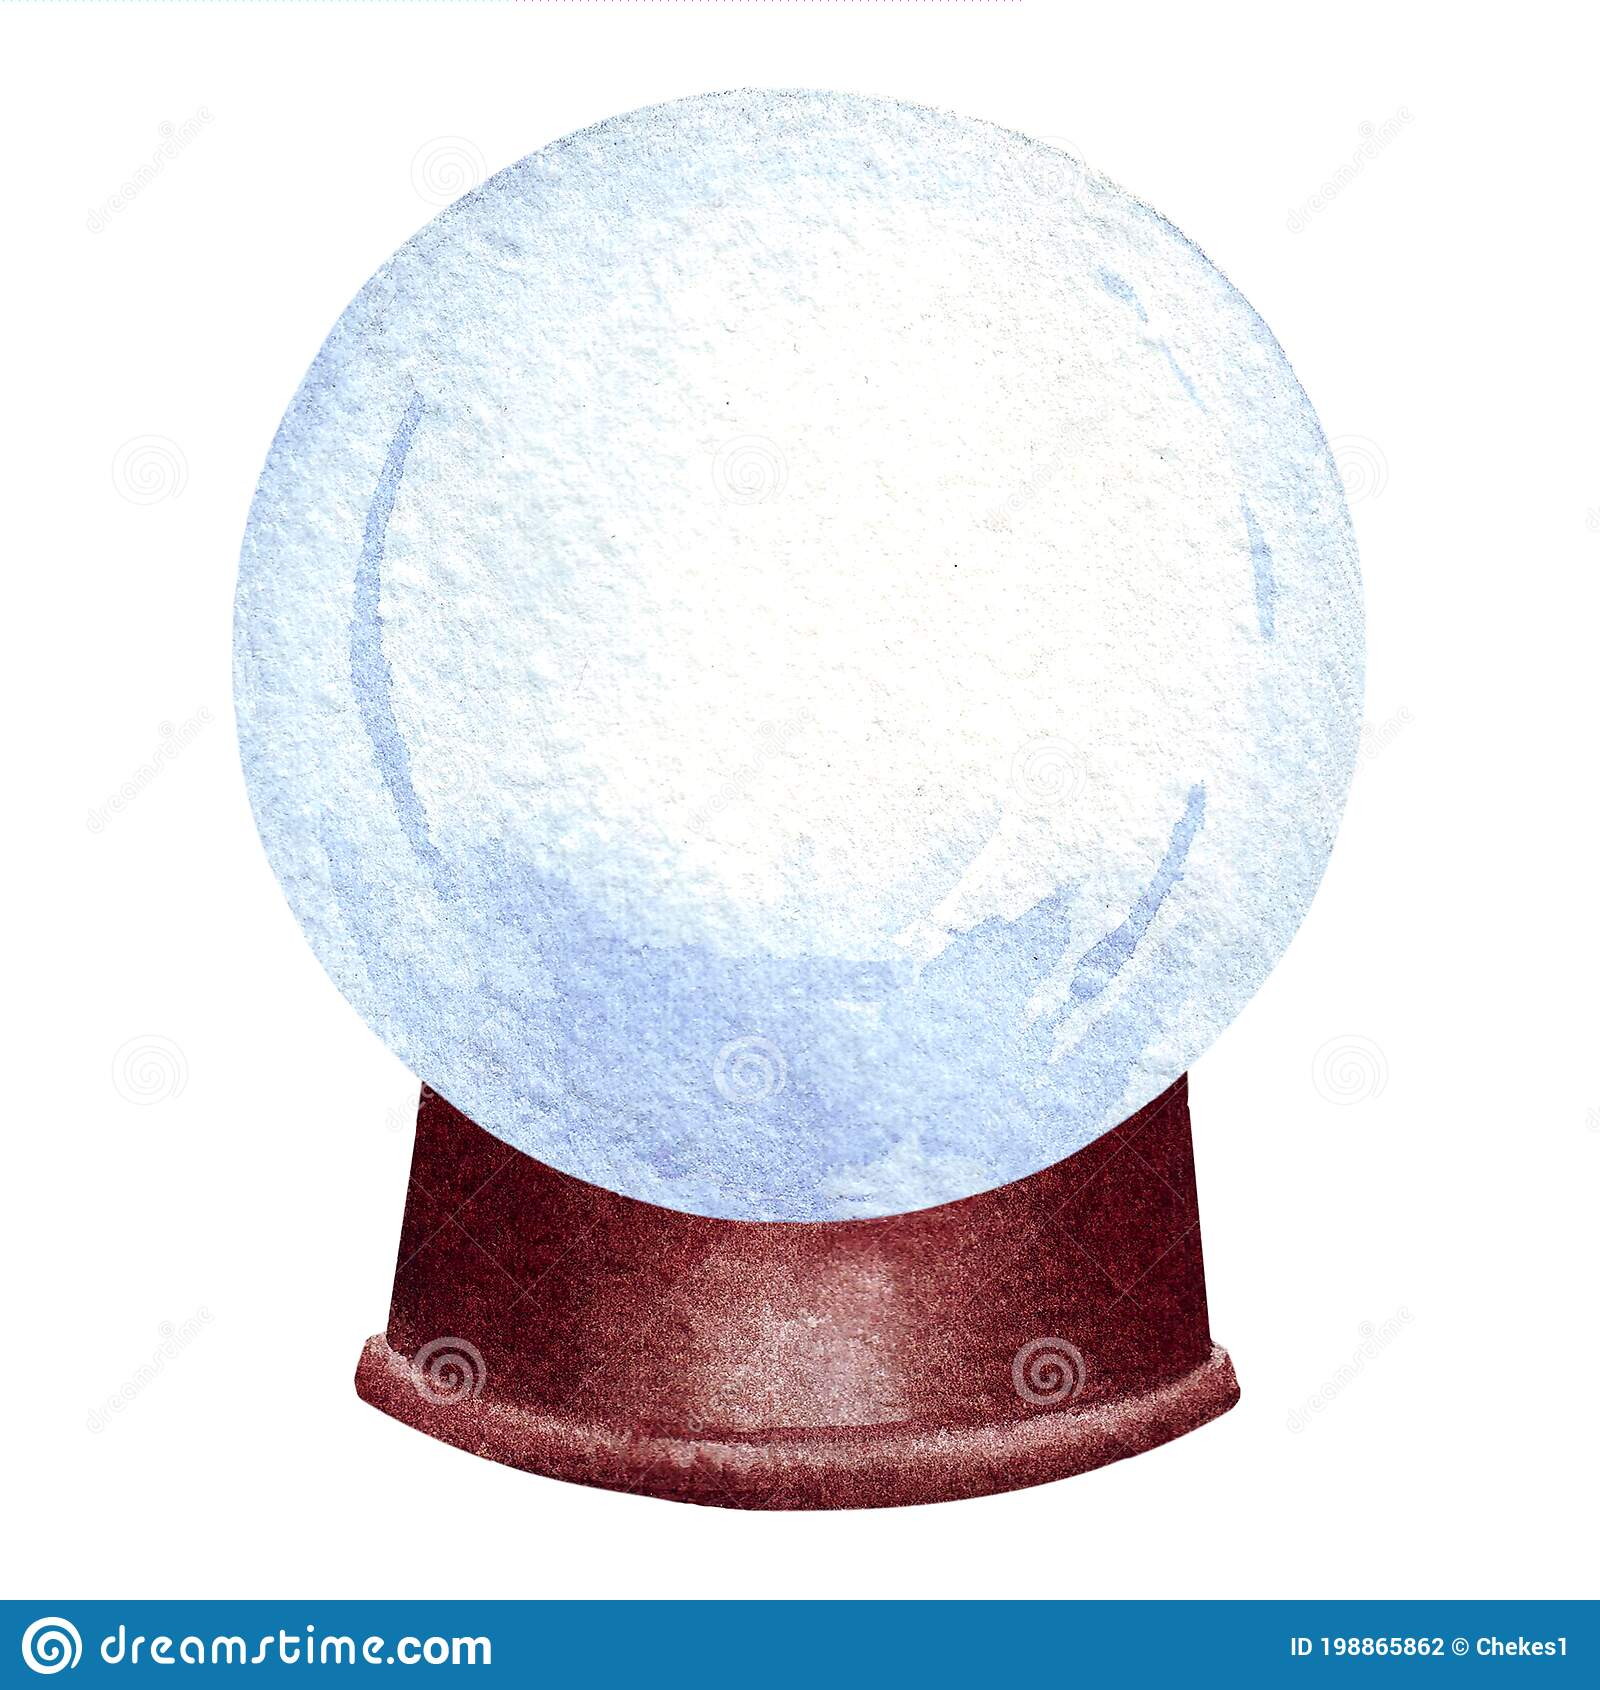 Drift Globe Snow Stock Illustrations 16 Drift Globe Snow Stock Illustrations Vectors Clipart Dreamstime Want to discover art related to driftglobe? drift globe snow stock illustrations 16 drift globe snow stock illustrations vectors clipart dreamstime